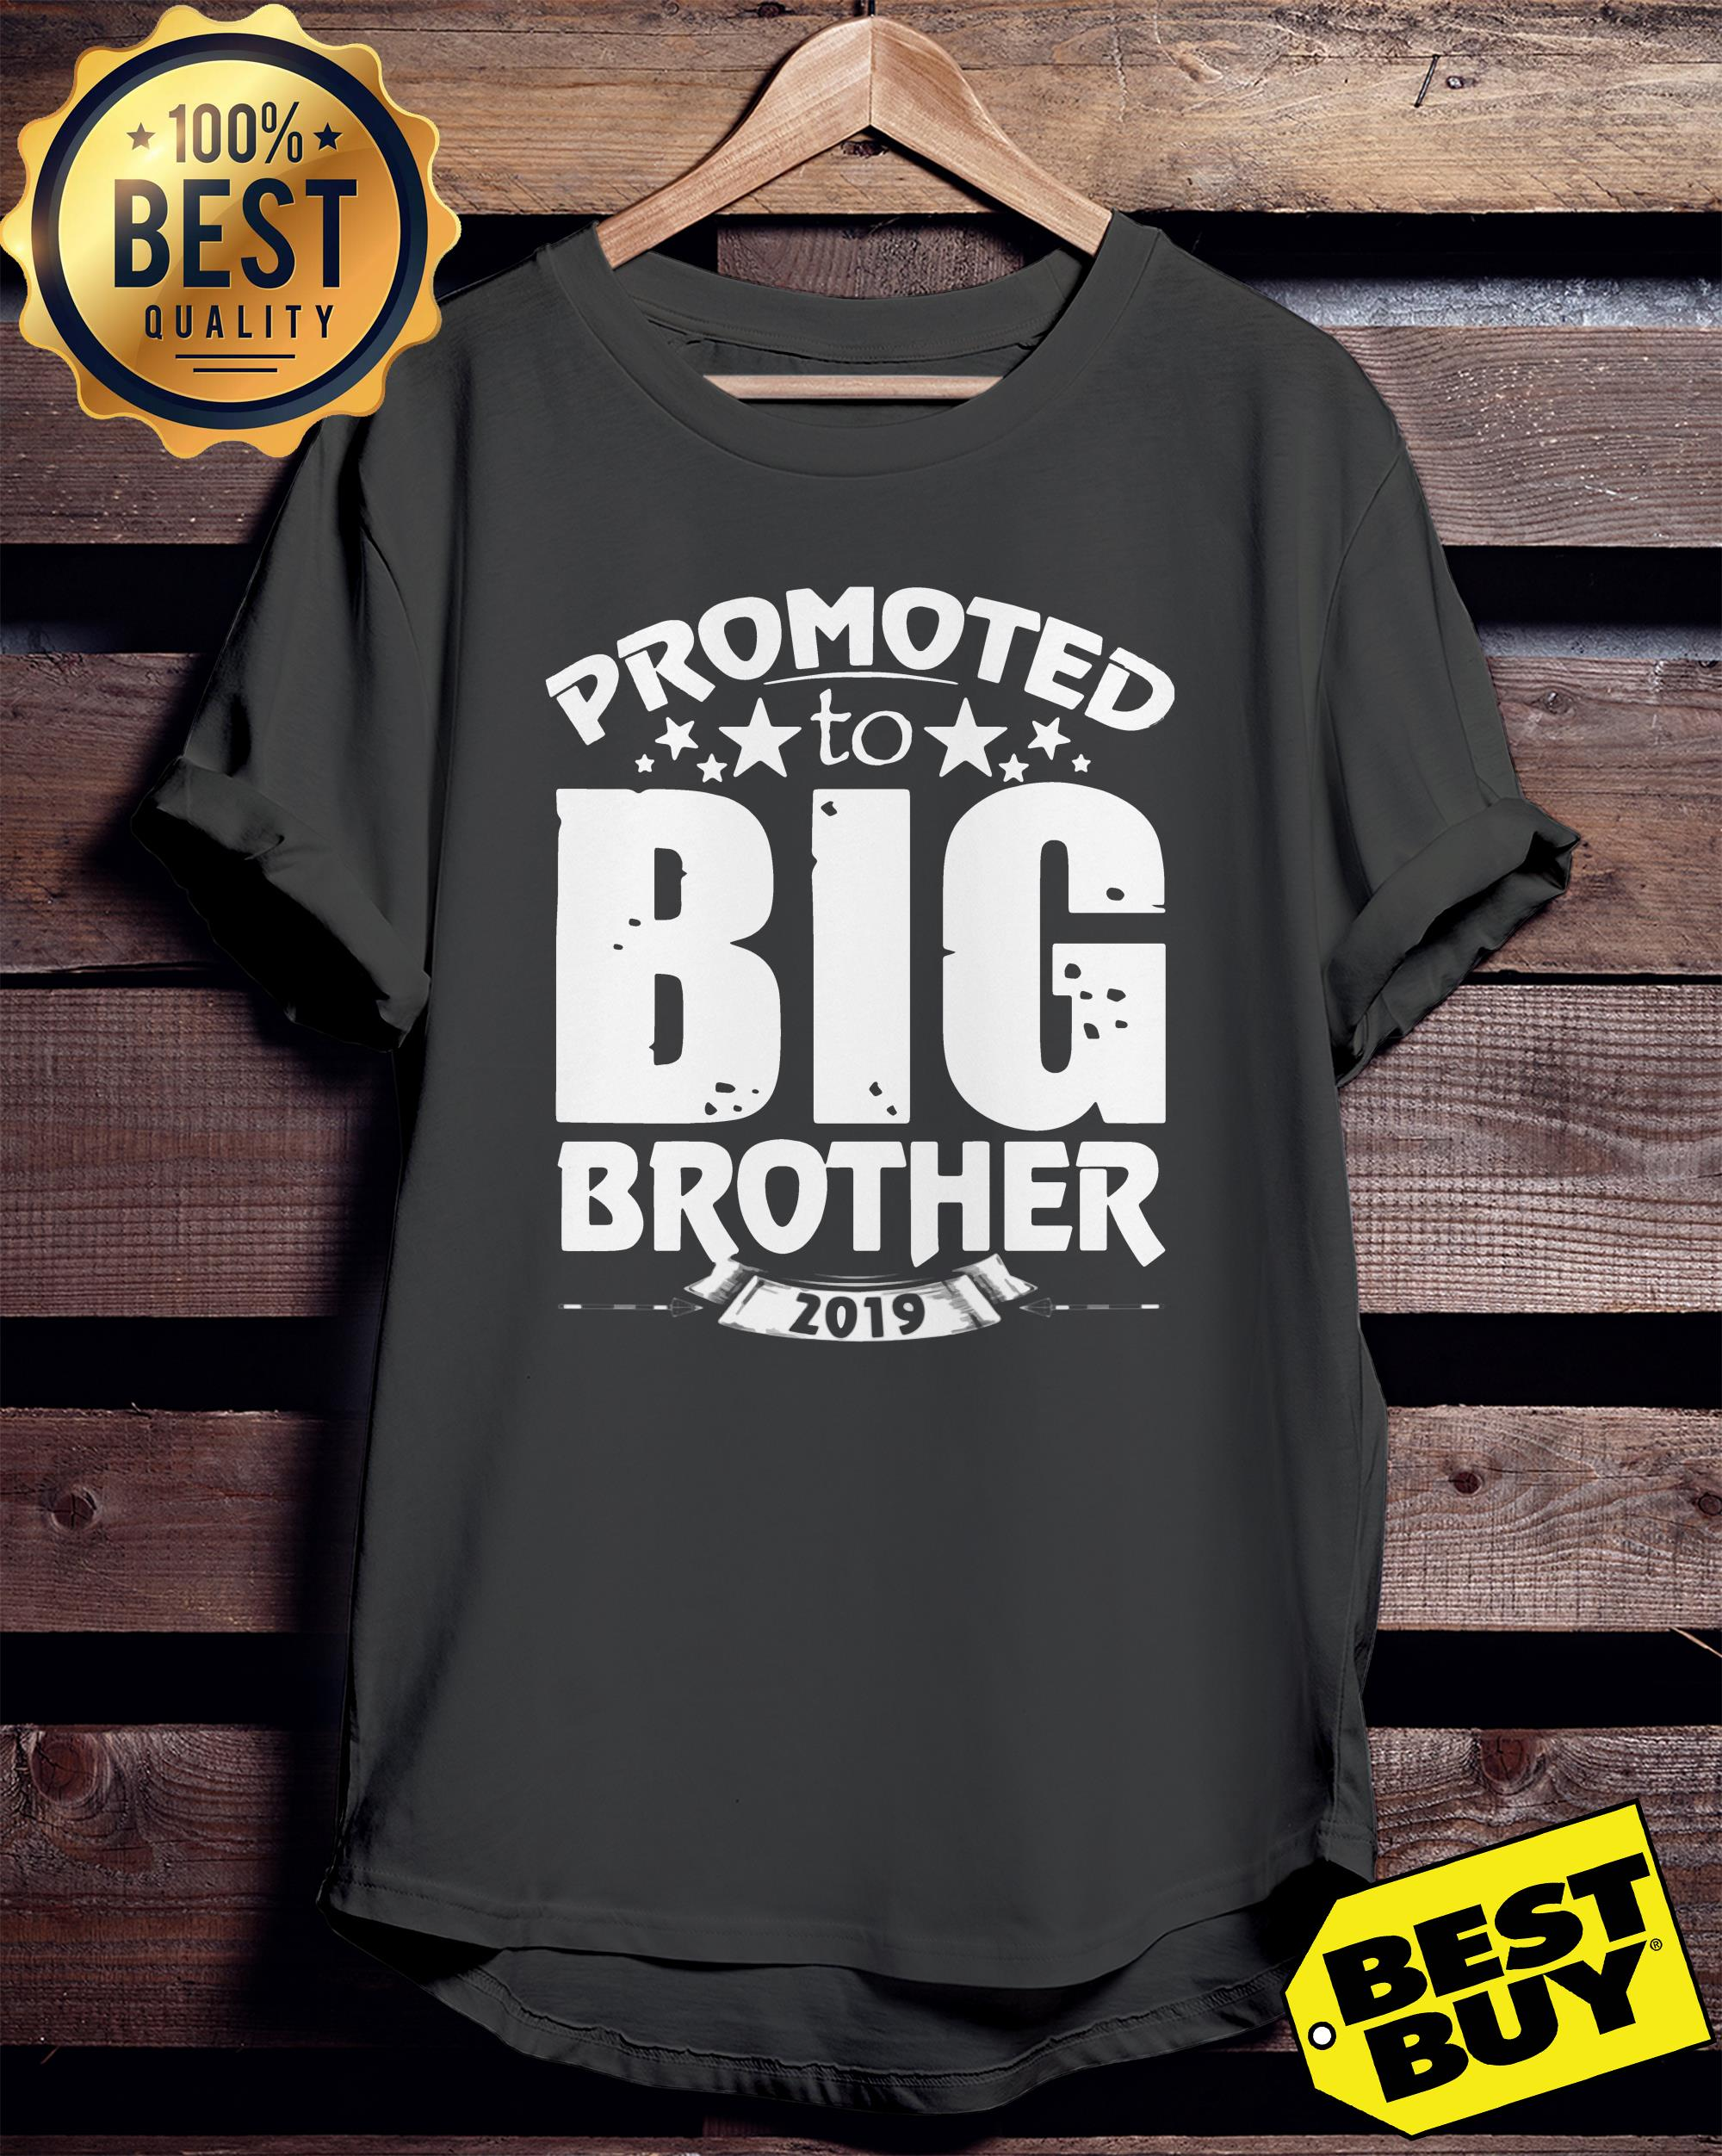 Promoted to Big Star Brother 2019 ladies tee